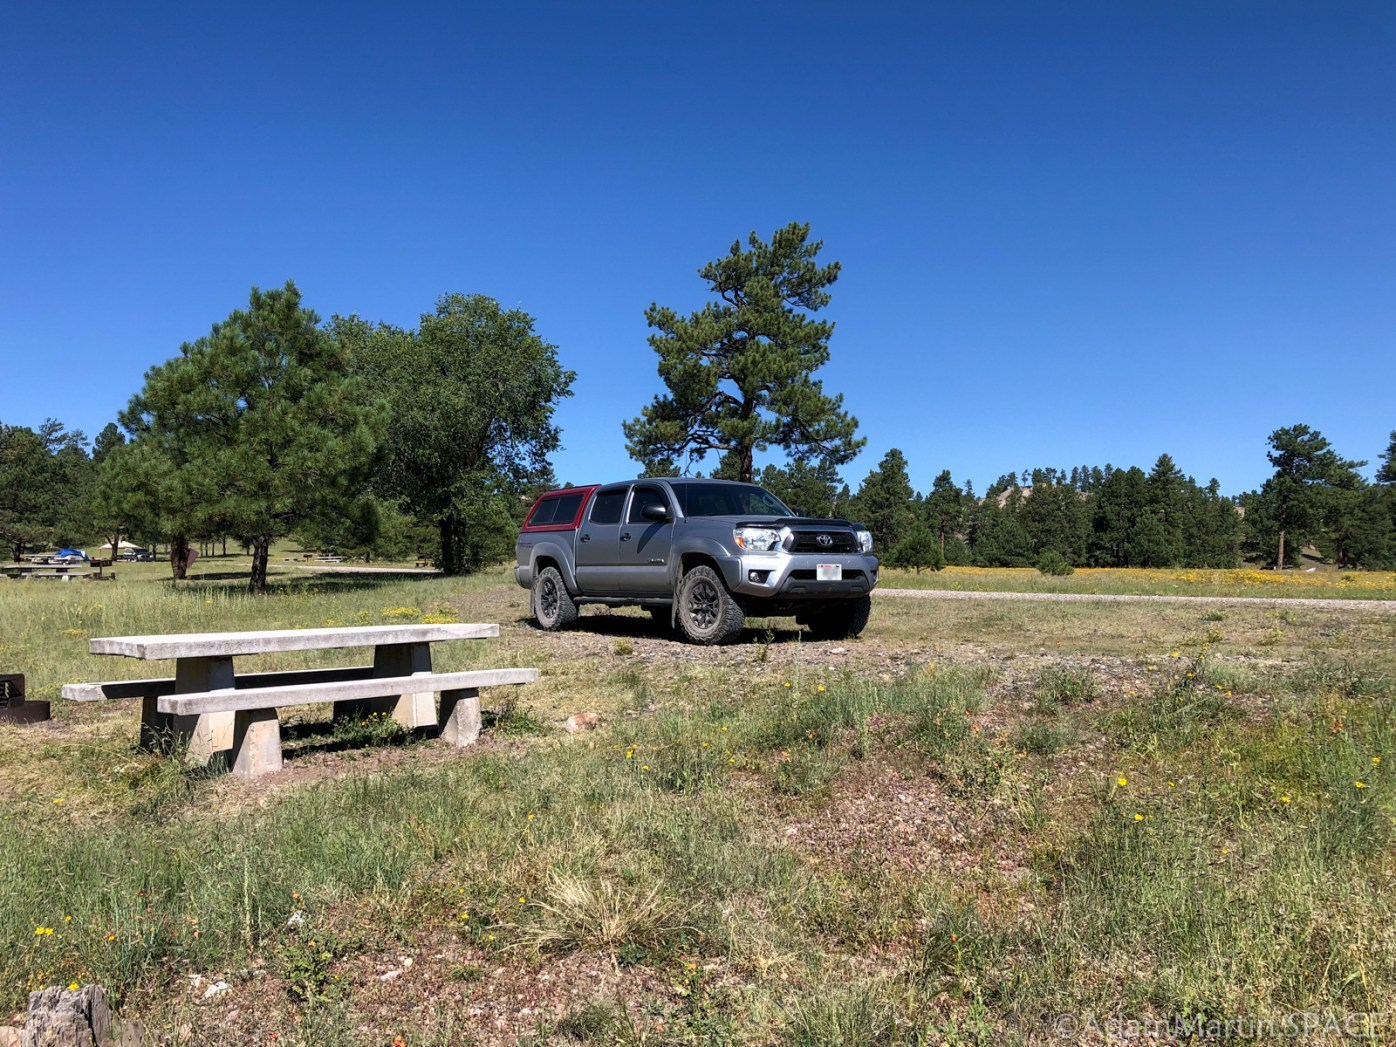 Choosing a campsite at Dipping Vat Campground